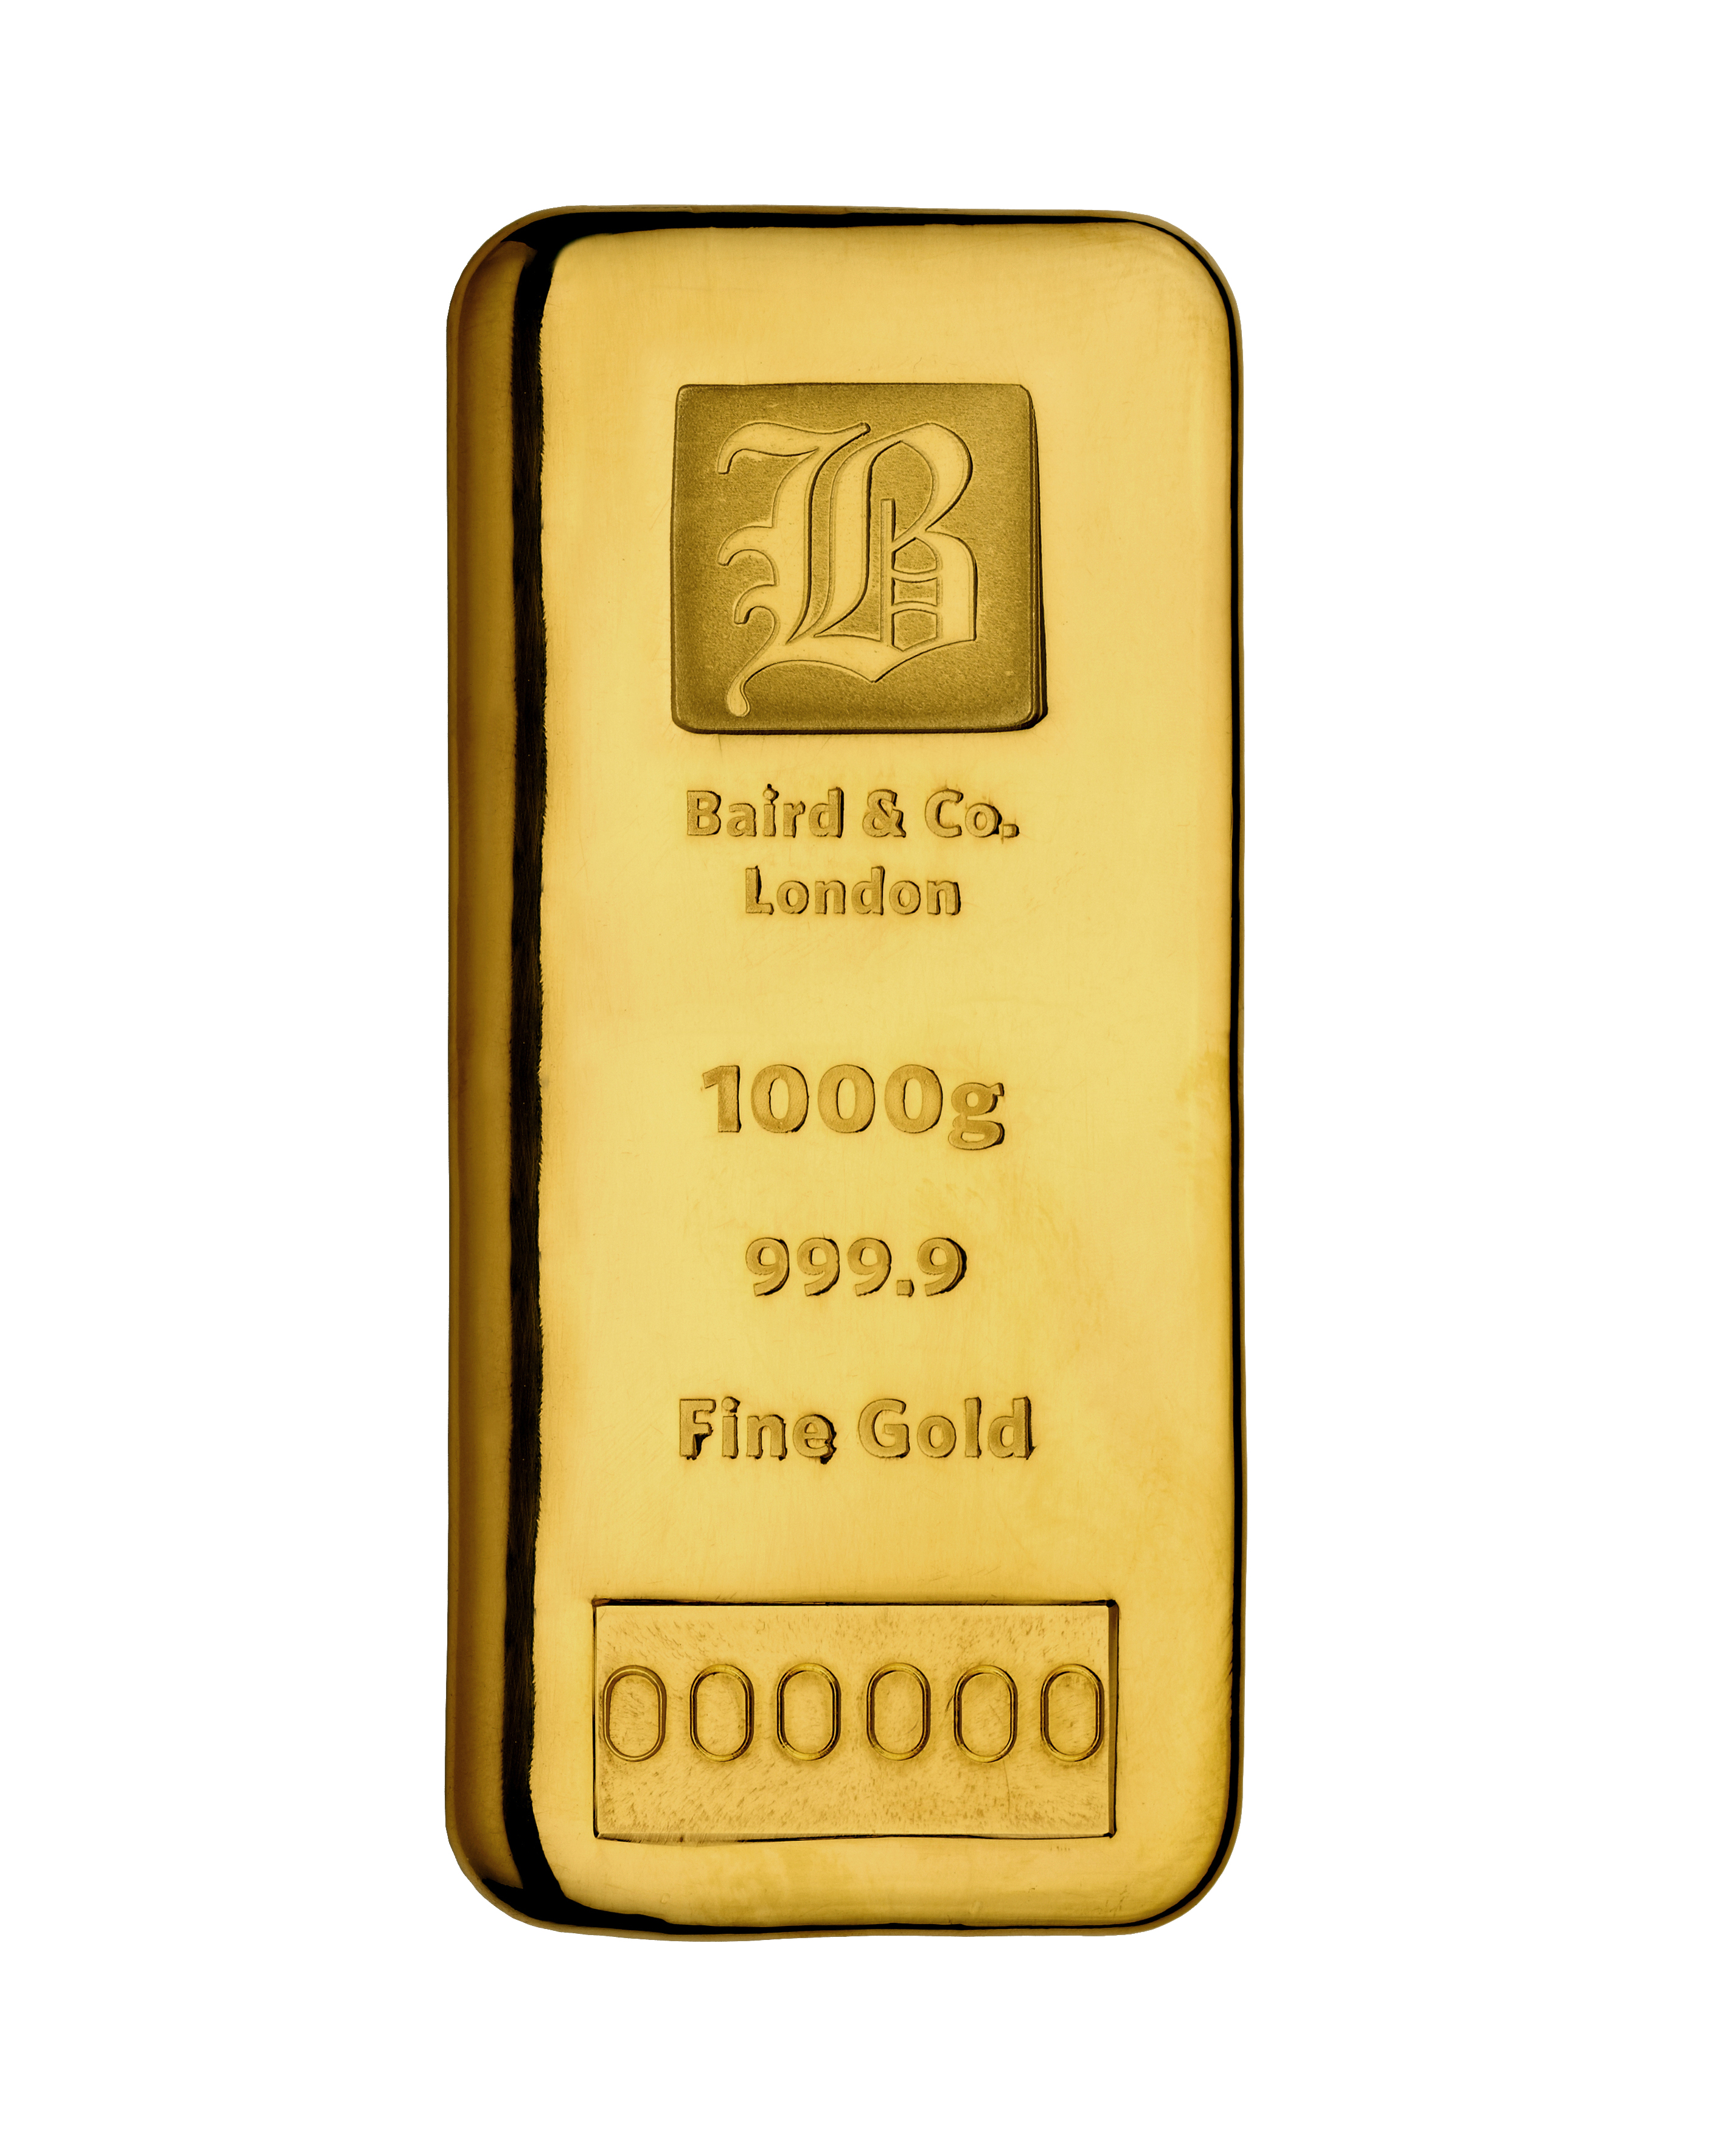 Gold Cast Bar 1000gr Baird Amp Co